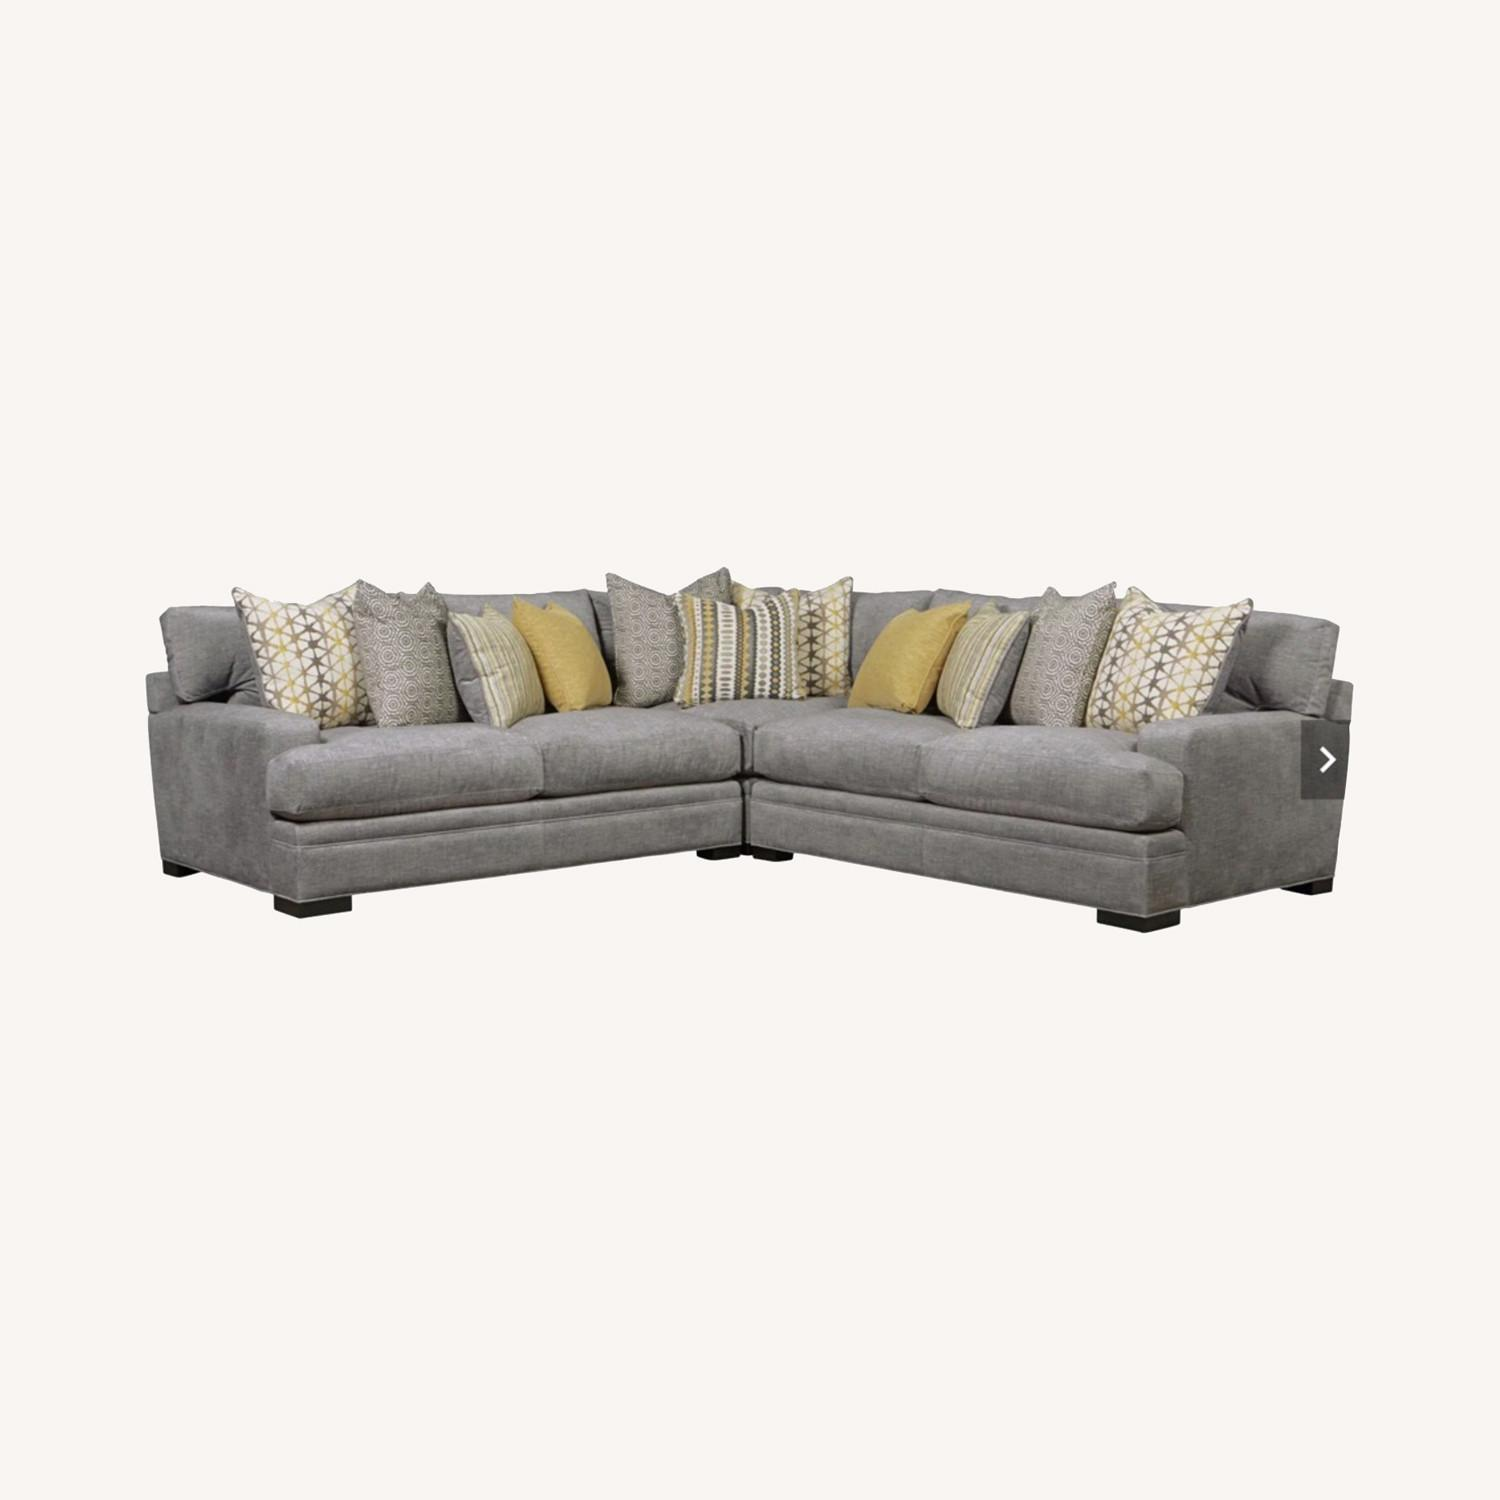 Rooms To Go Gray 3 Piece Sectional Cindy Crawford Home - image-0